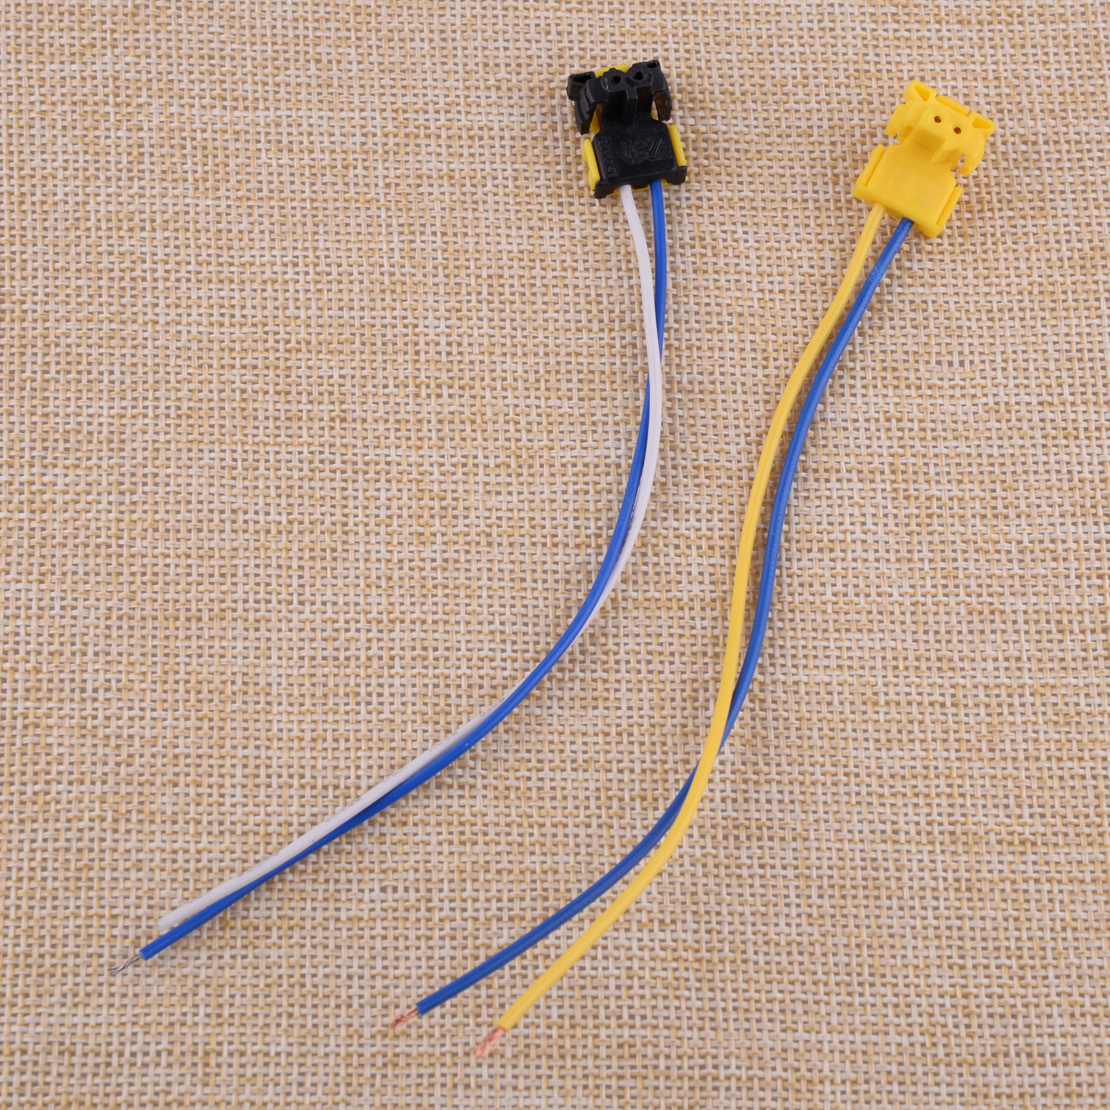 2x Airbag Clockspring Plug Air Bag Connector Wire Cable